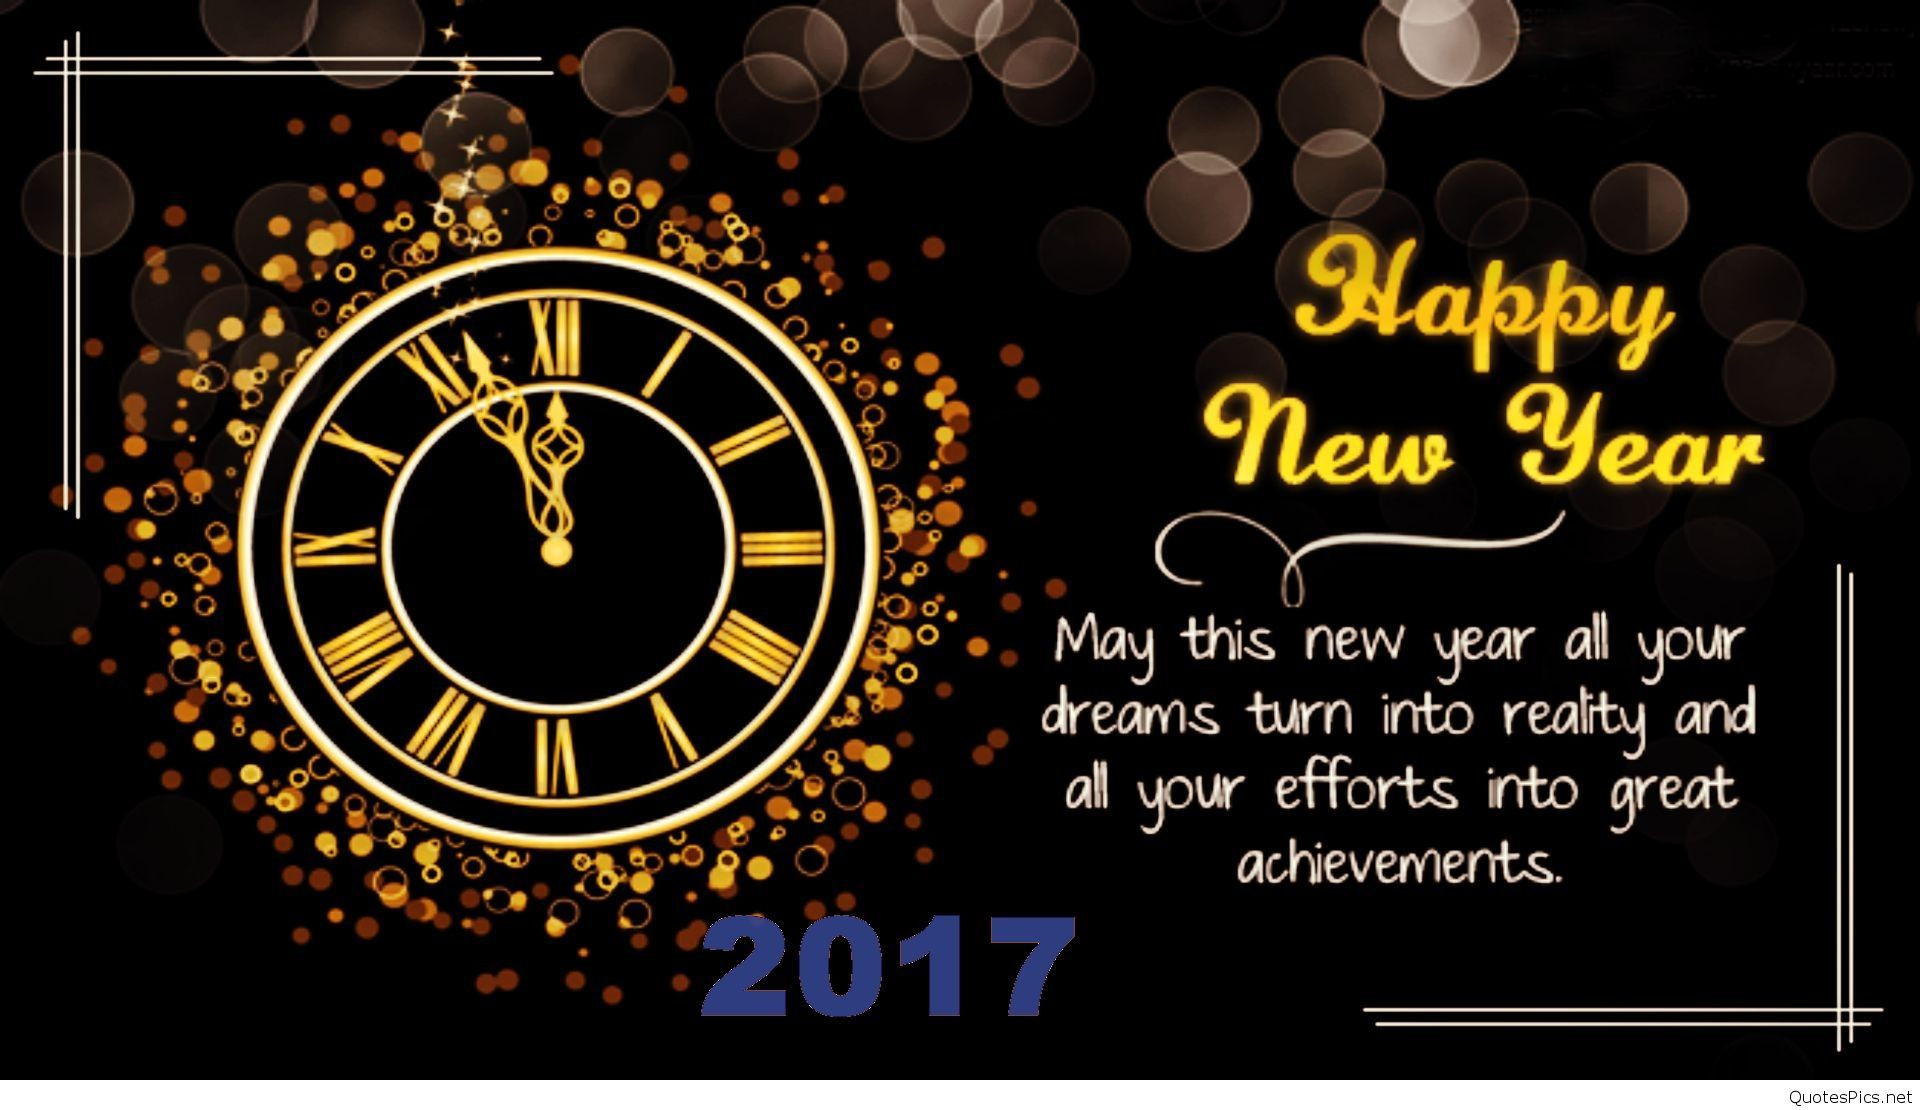 Awesome Let The Coming 2017 Year Be A Glorious And That Rewards All Your Future  Endeavors With